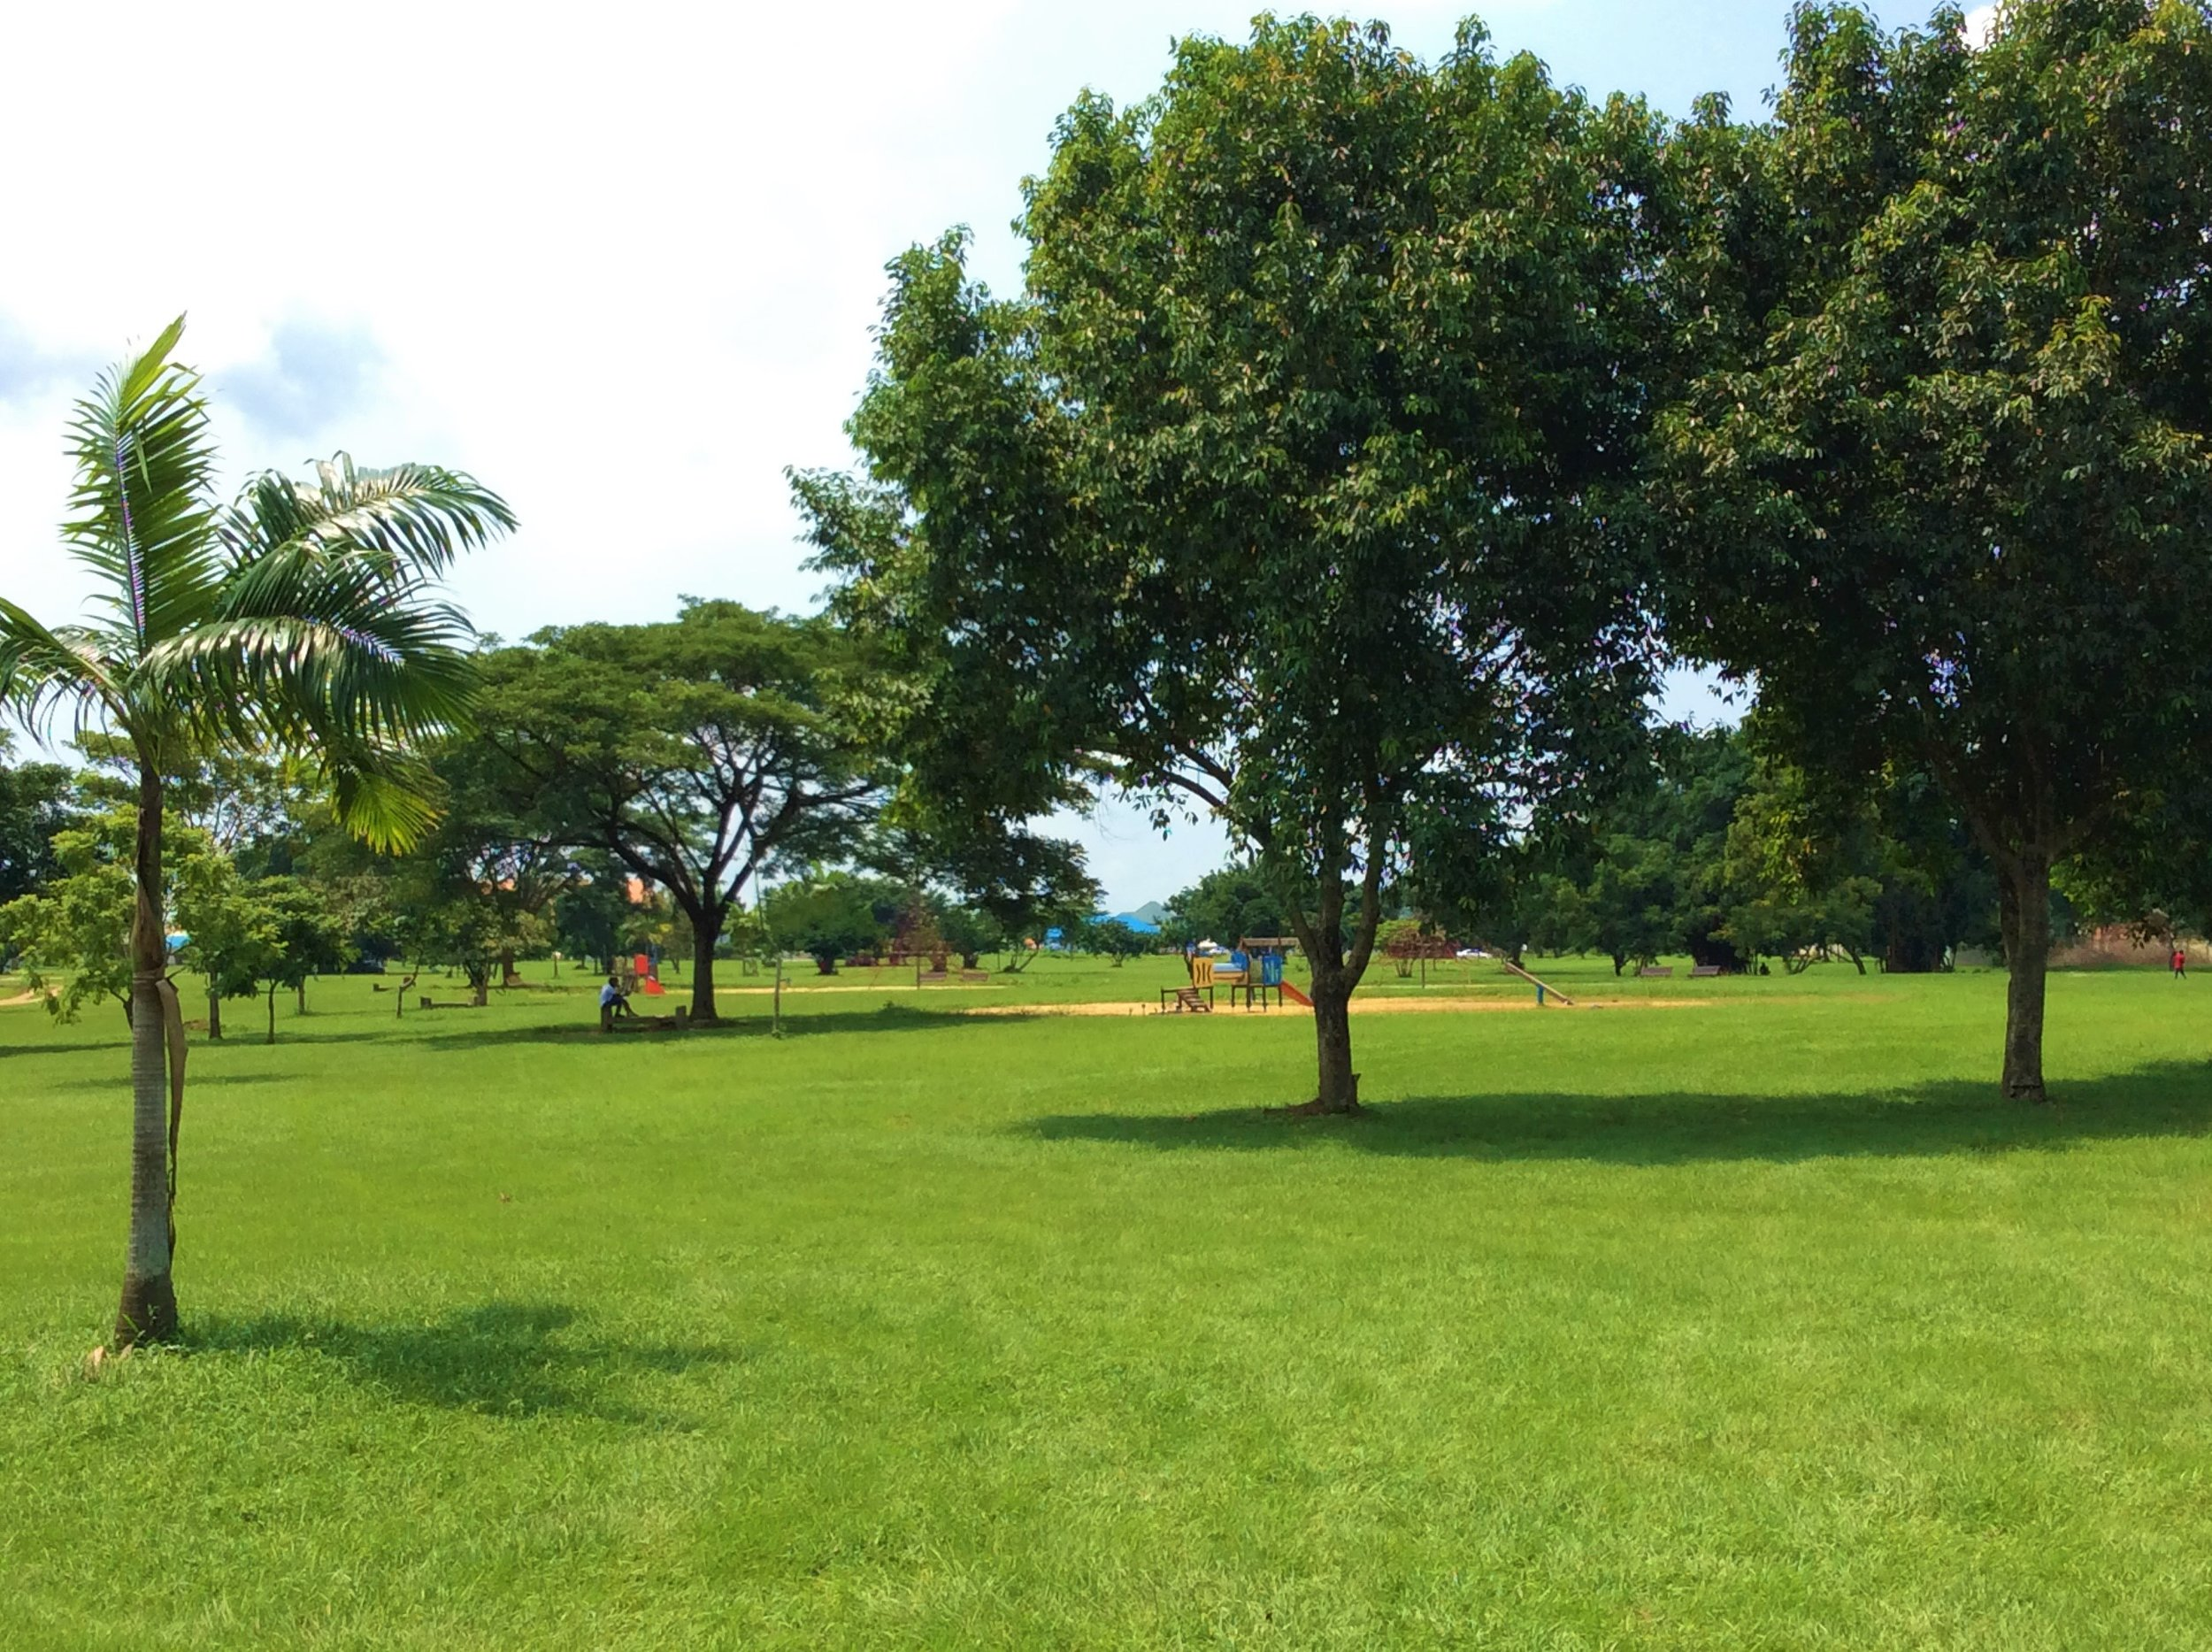 IBOM PARK.  This is a lush field where the good people of Uyo go for some relaxation. However, it is now more commonly used for birthdays and weddings.